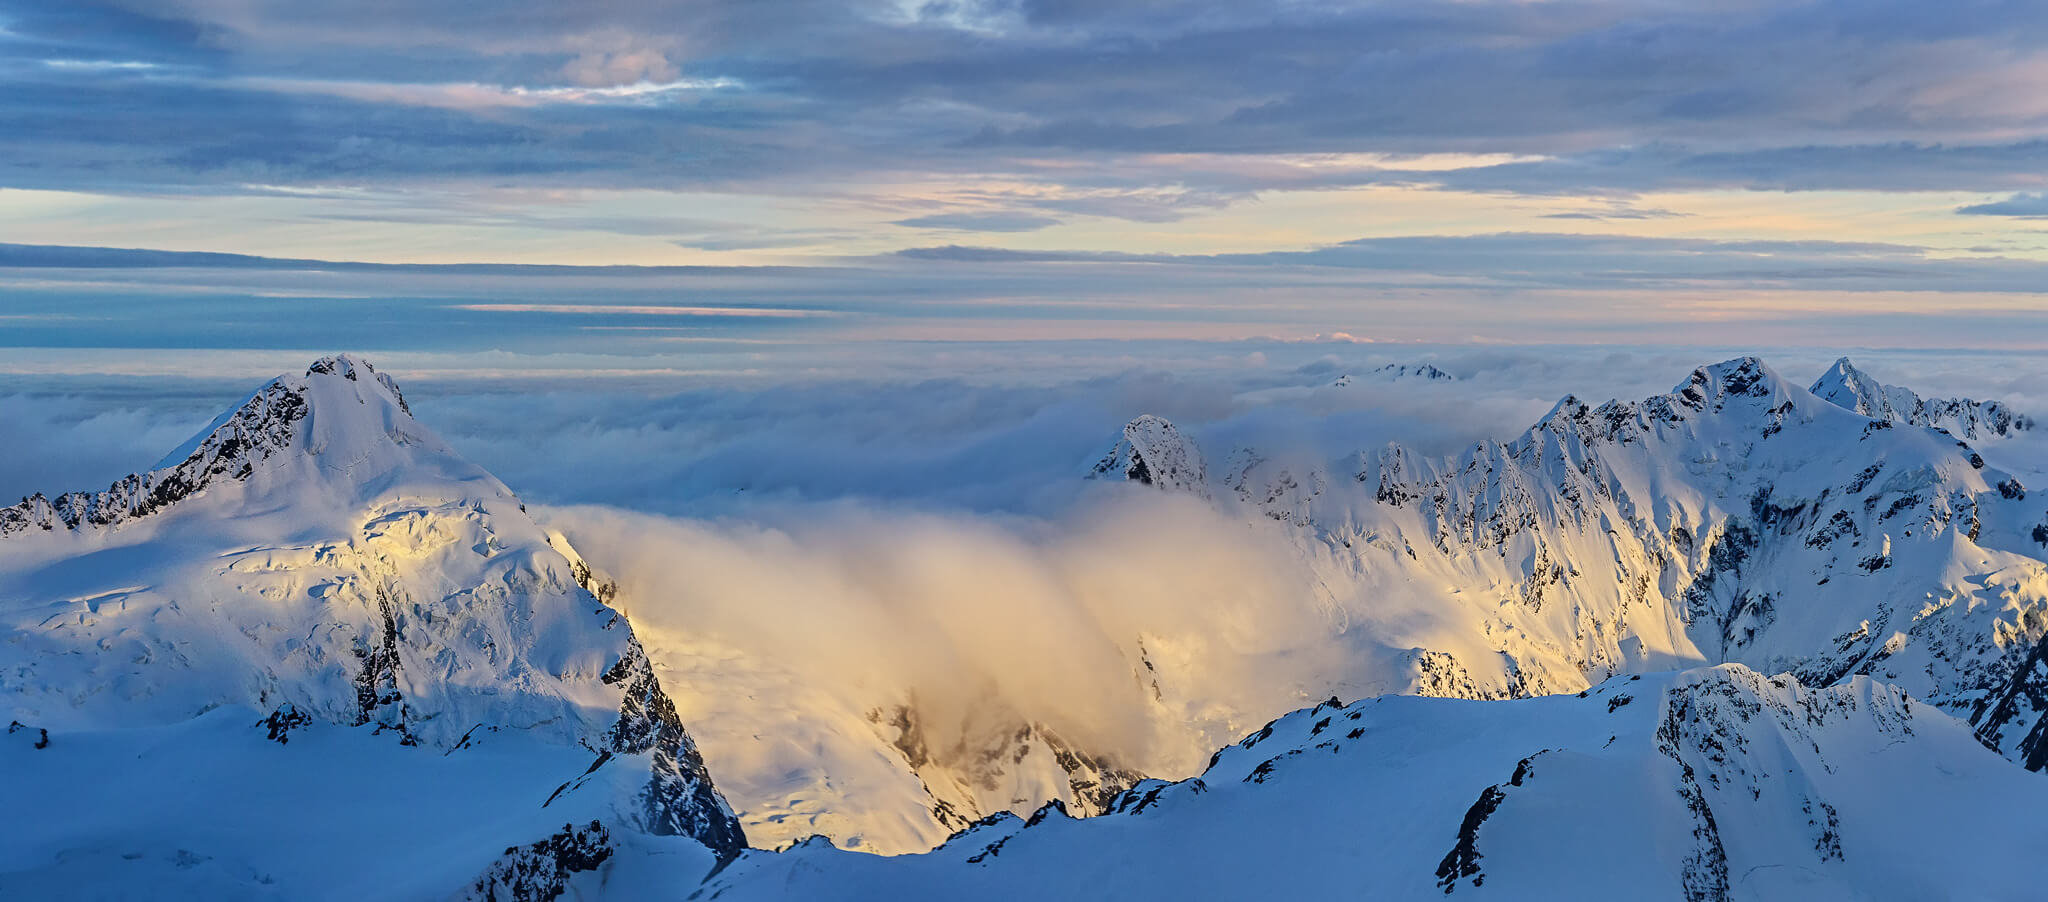 photography guide mount cook scenic flight sunrise pano by nico babot